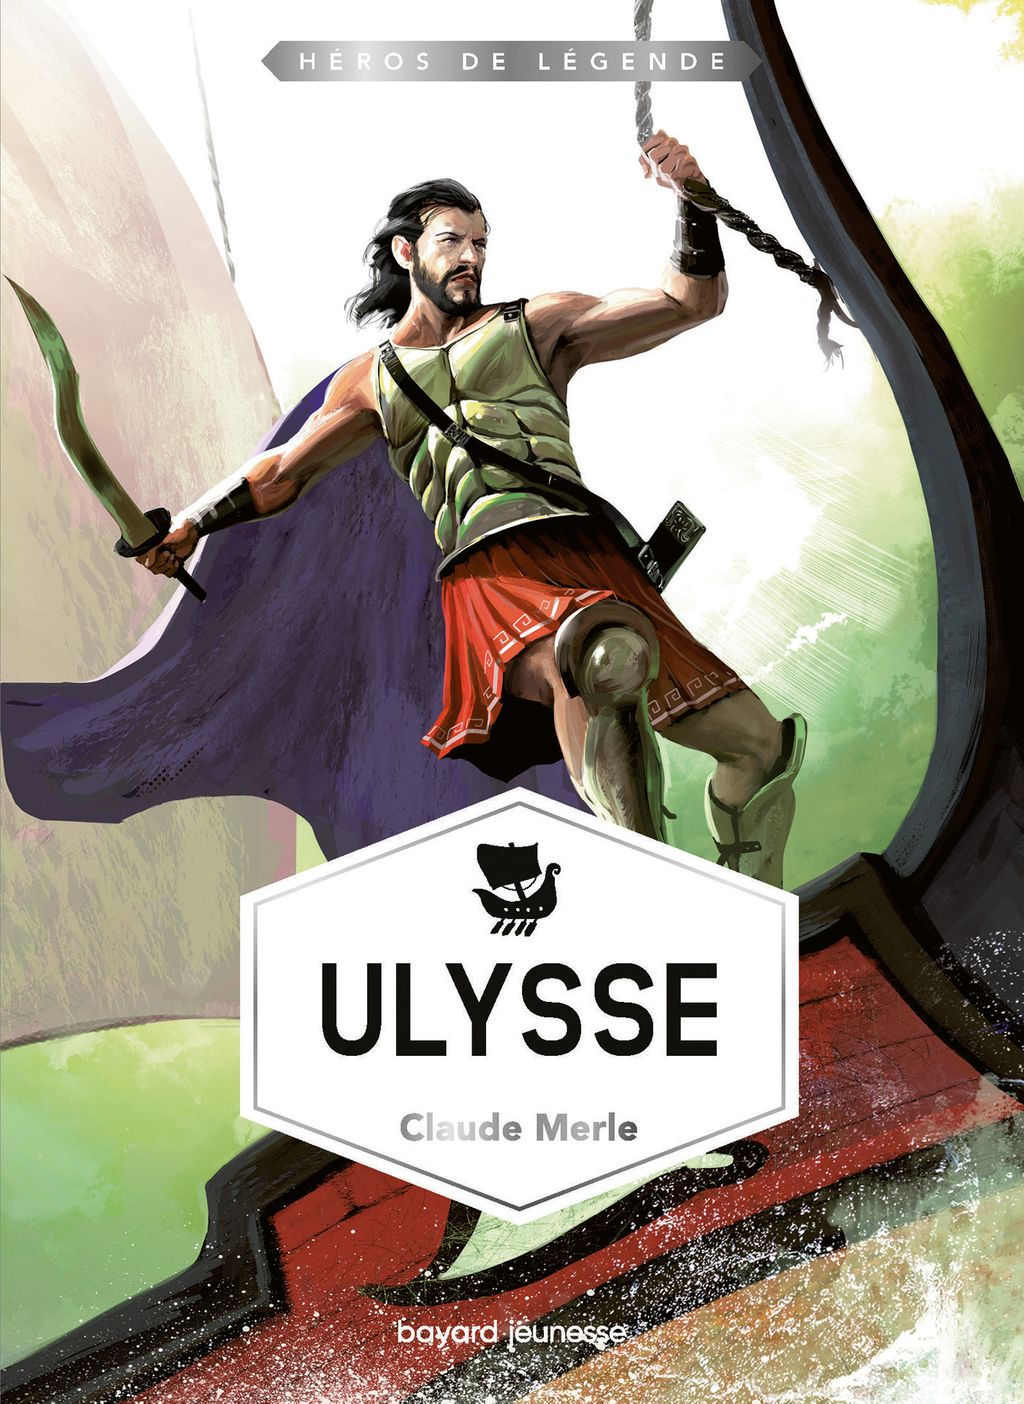 « Ulysse » cover